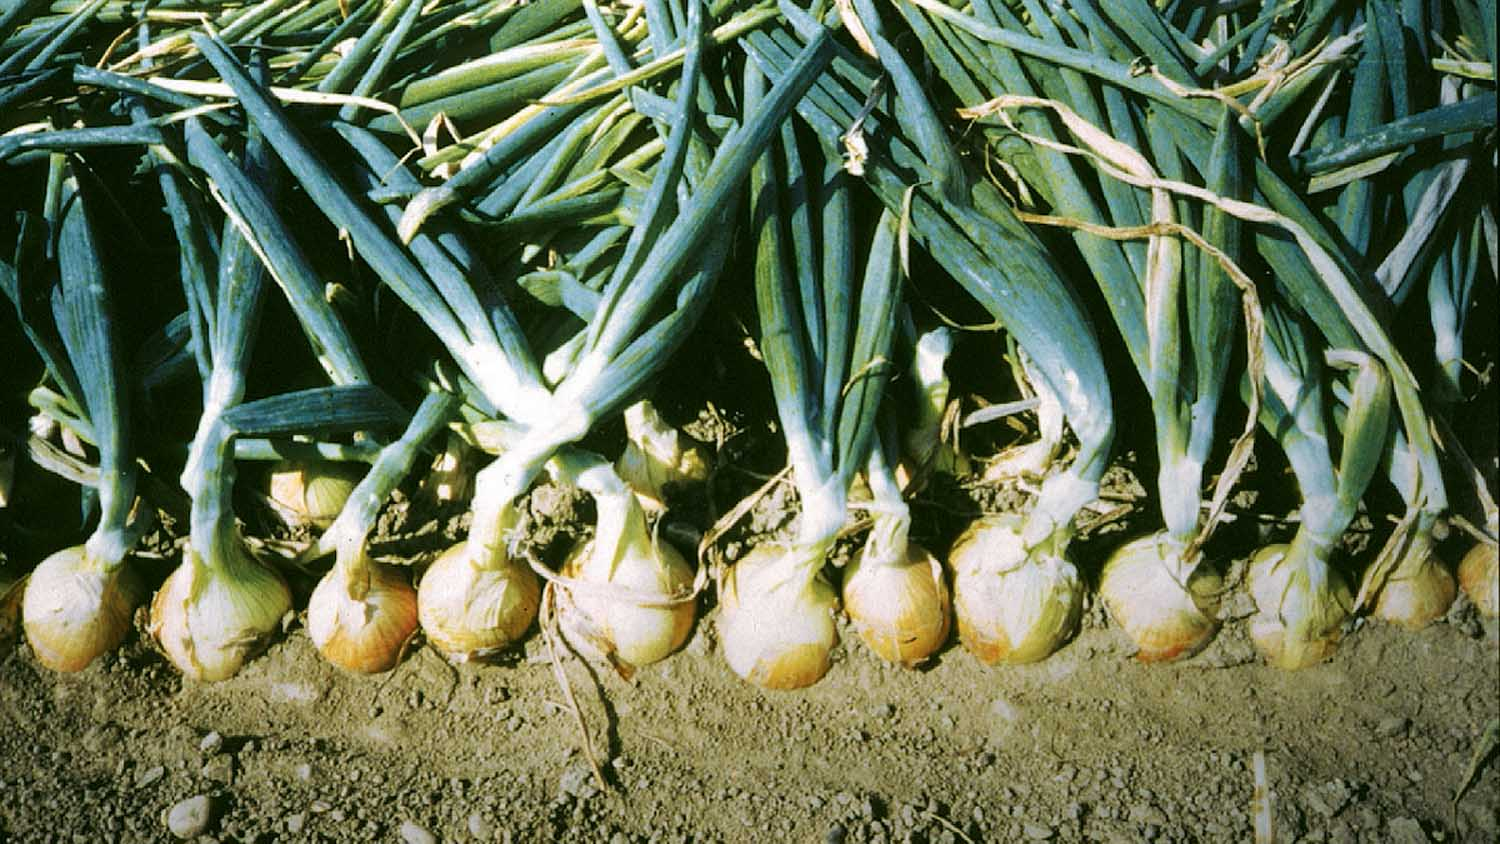 New onion varieties show potential to improve productivity